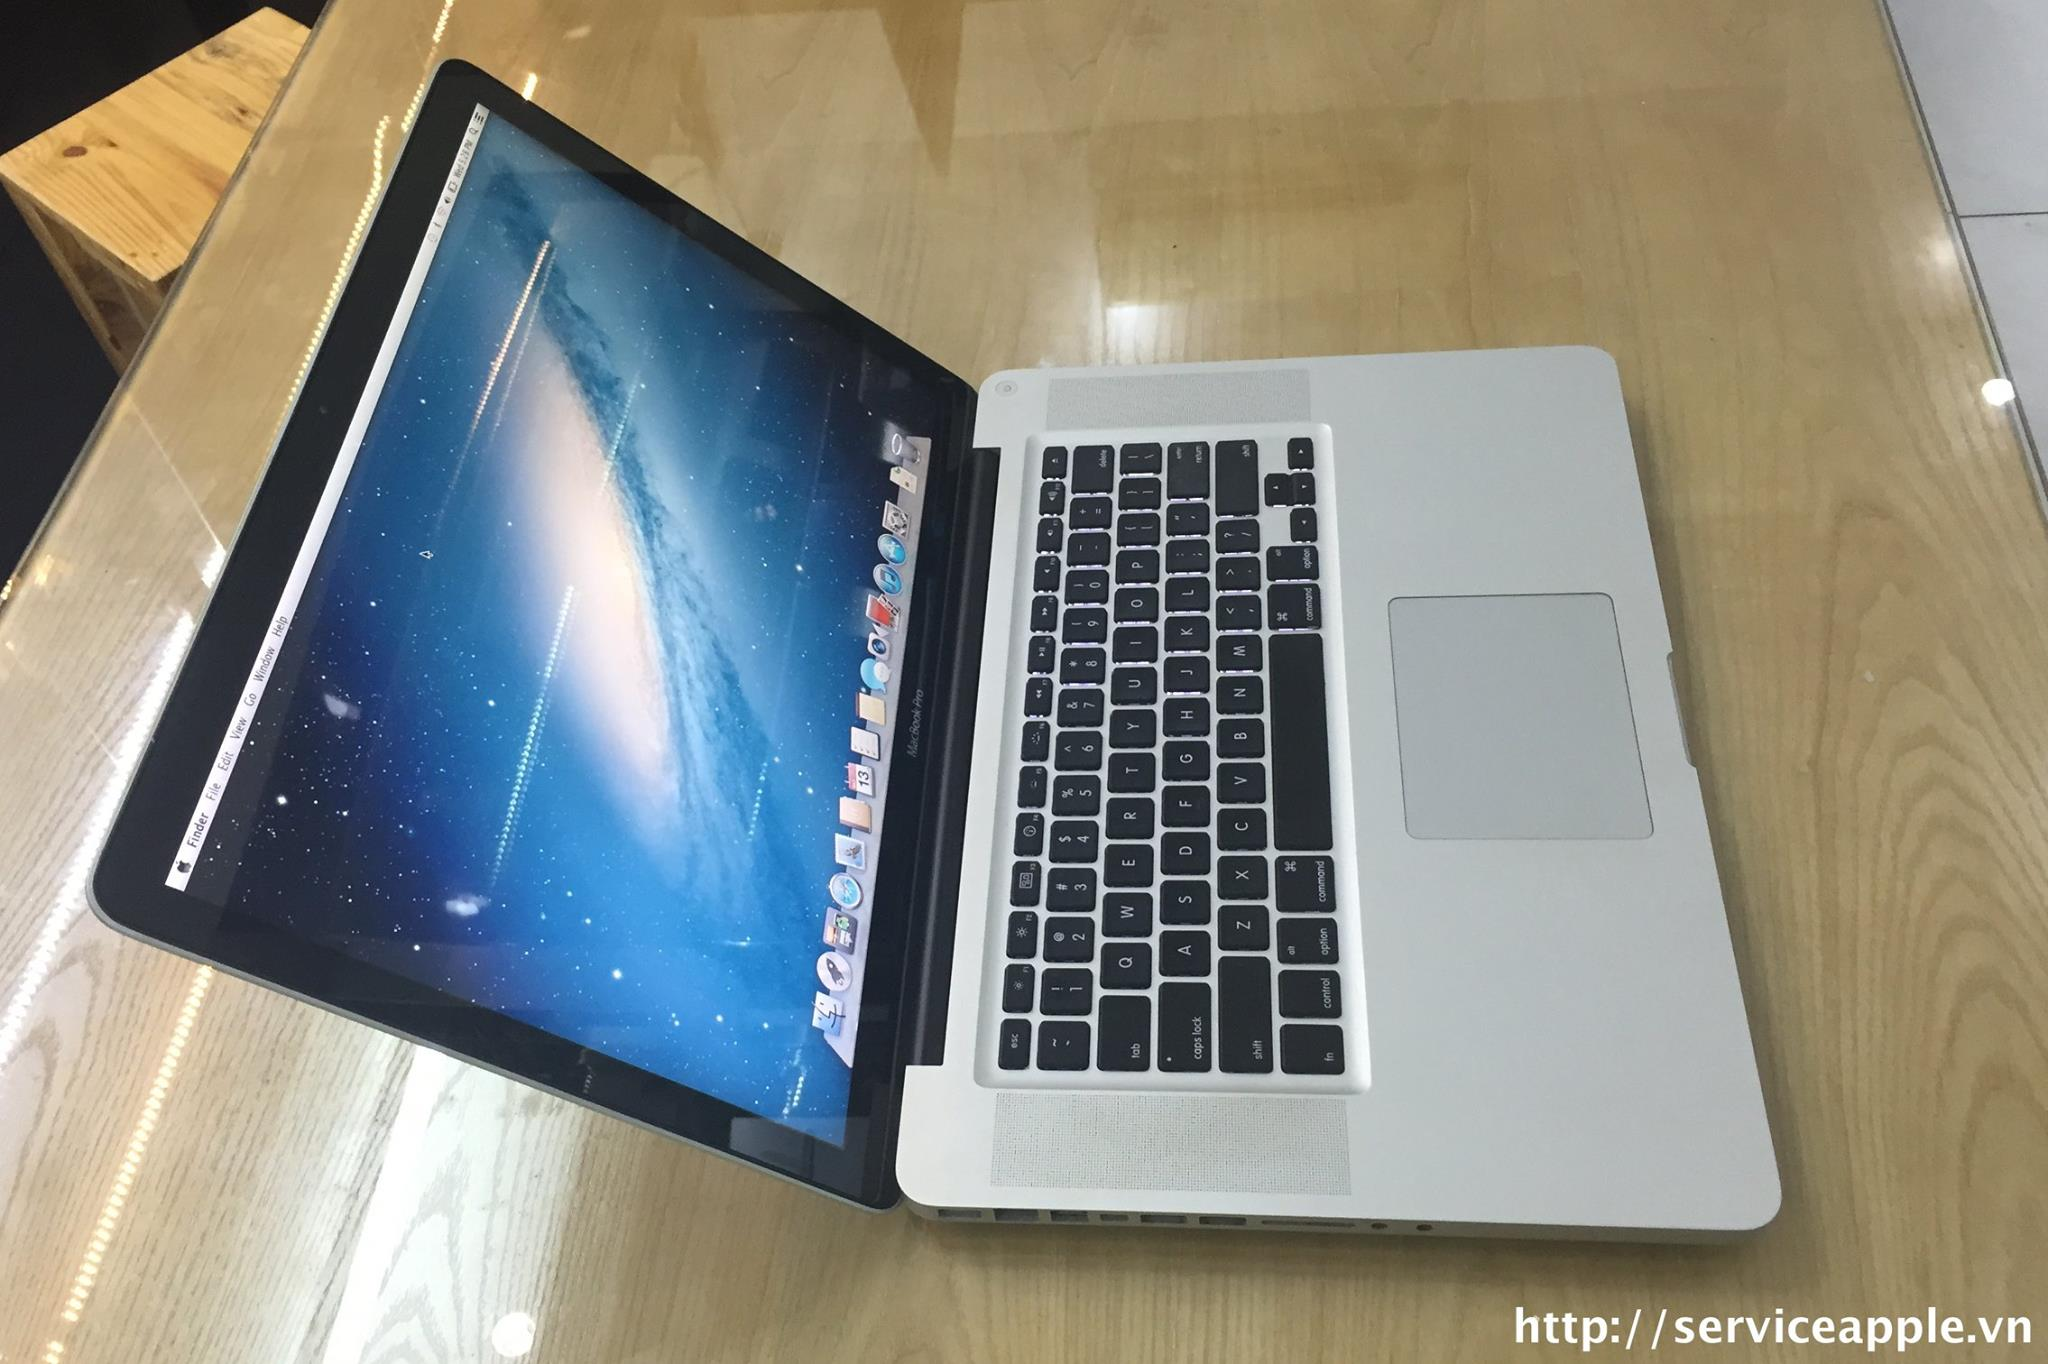 Macbook Pro A1286 MC373-9.jpg